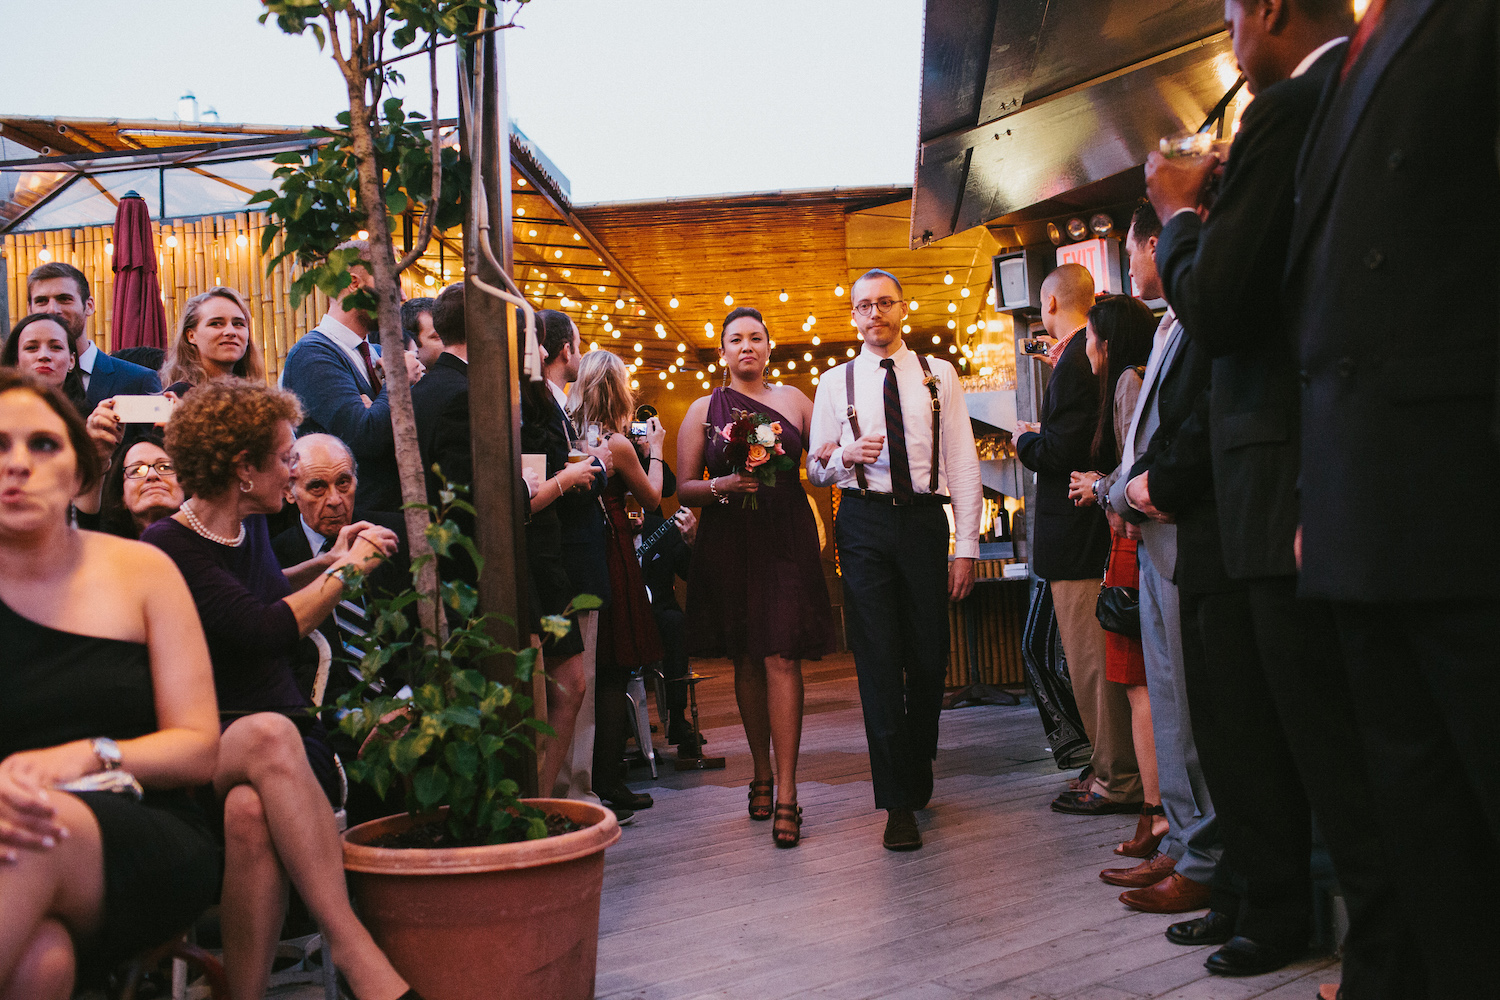 Full Aperture Floral & Corey Torpie Photography  - Brooklyn Wedding - 86.jpeg